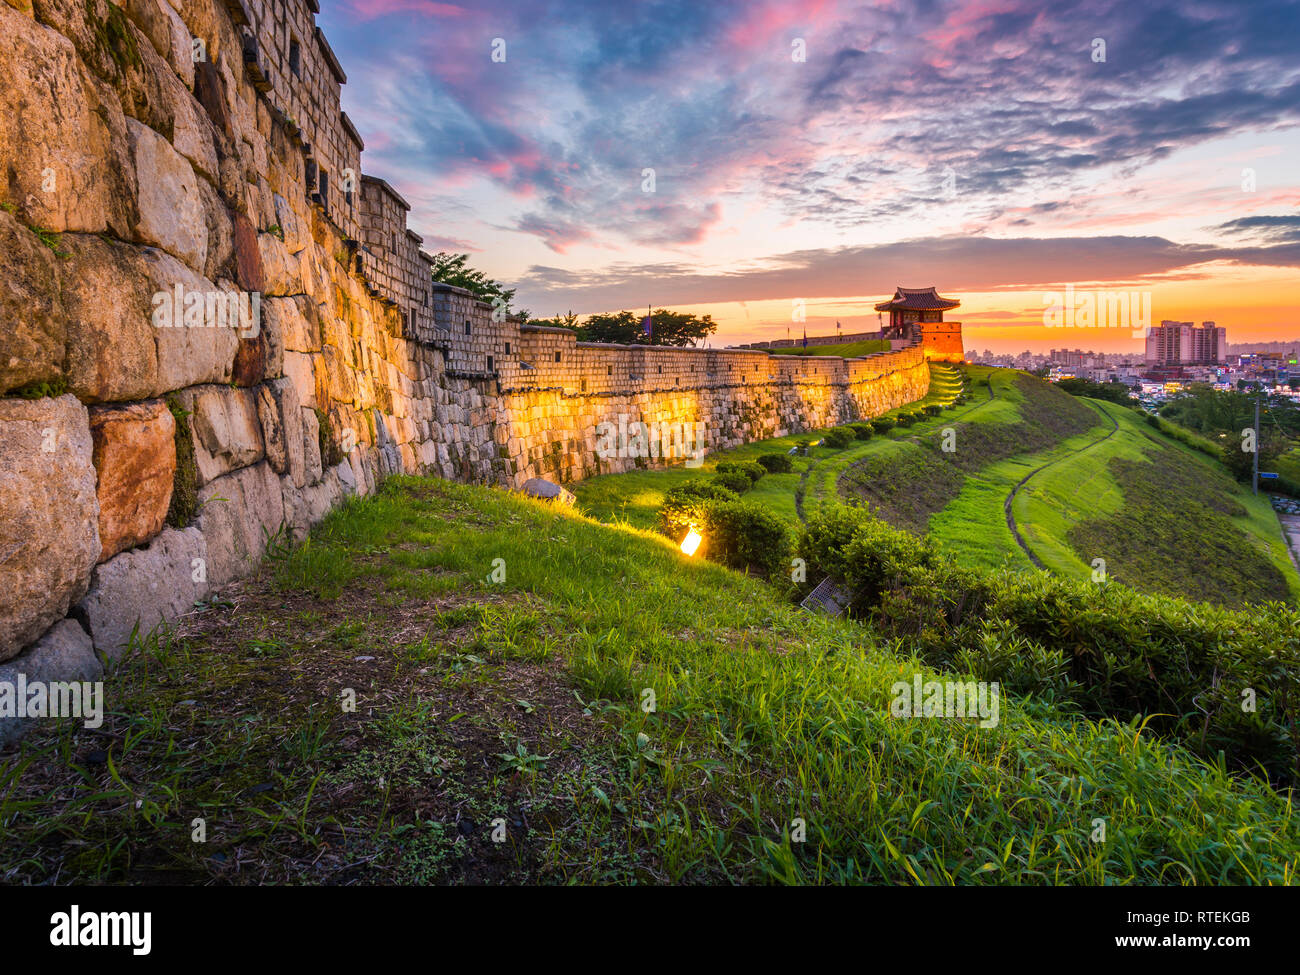 Hwaseong Fortress in Sunset, Traditional Architecture of Korea at Suwon, South Korea. Stock Photo